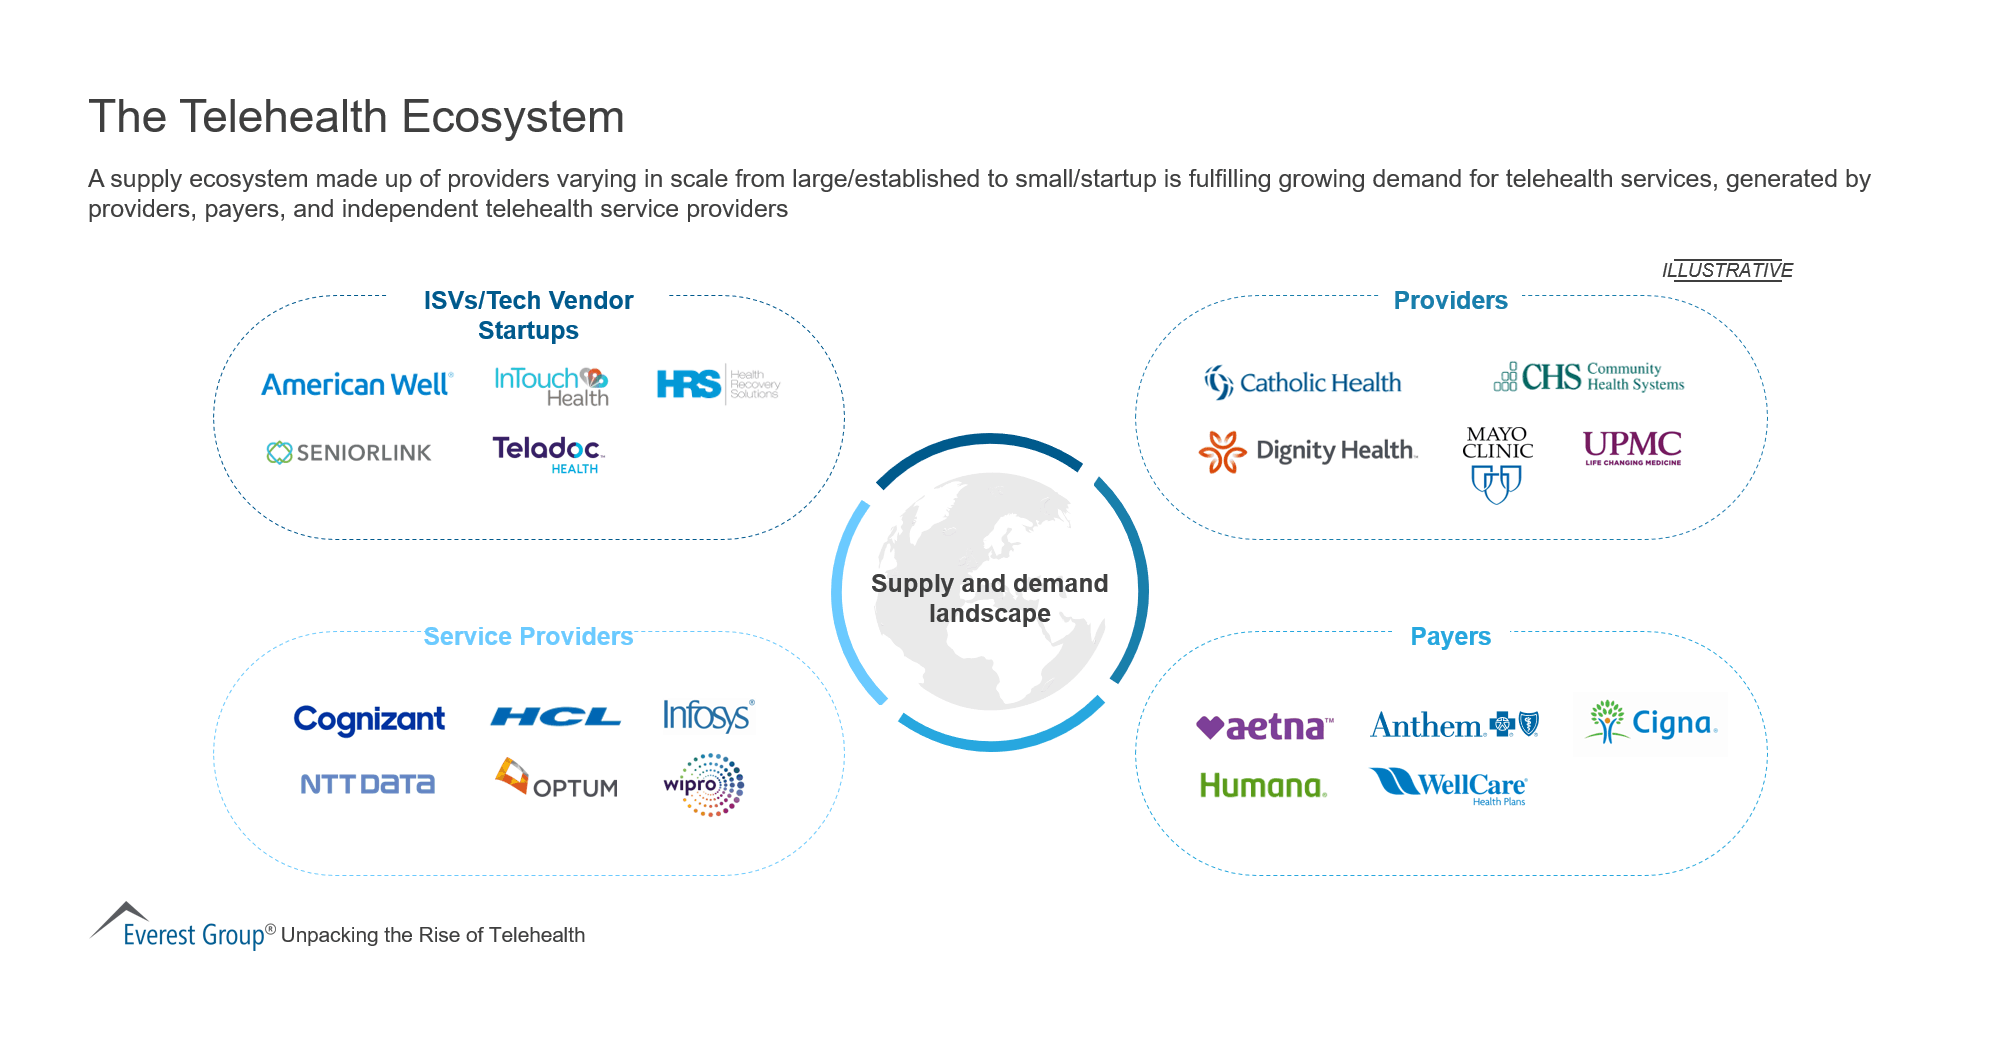 The Telehealth Ecosystem